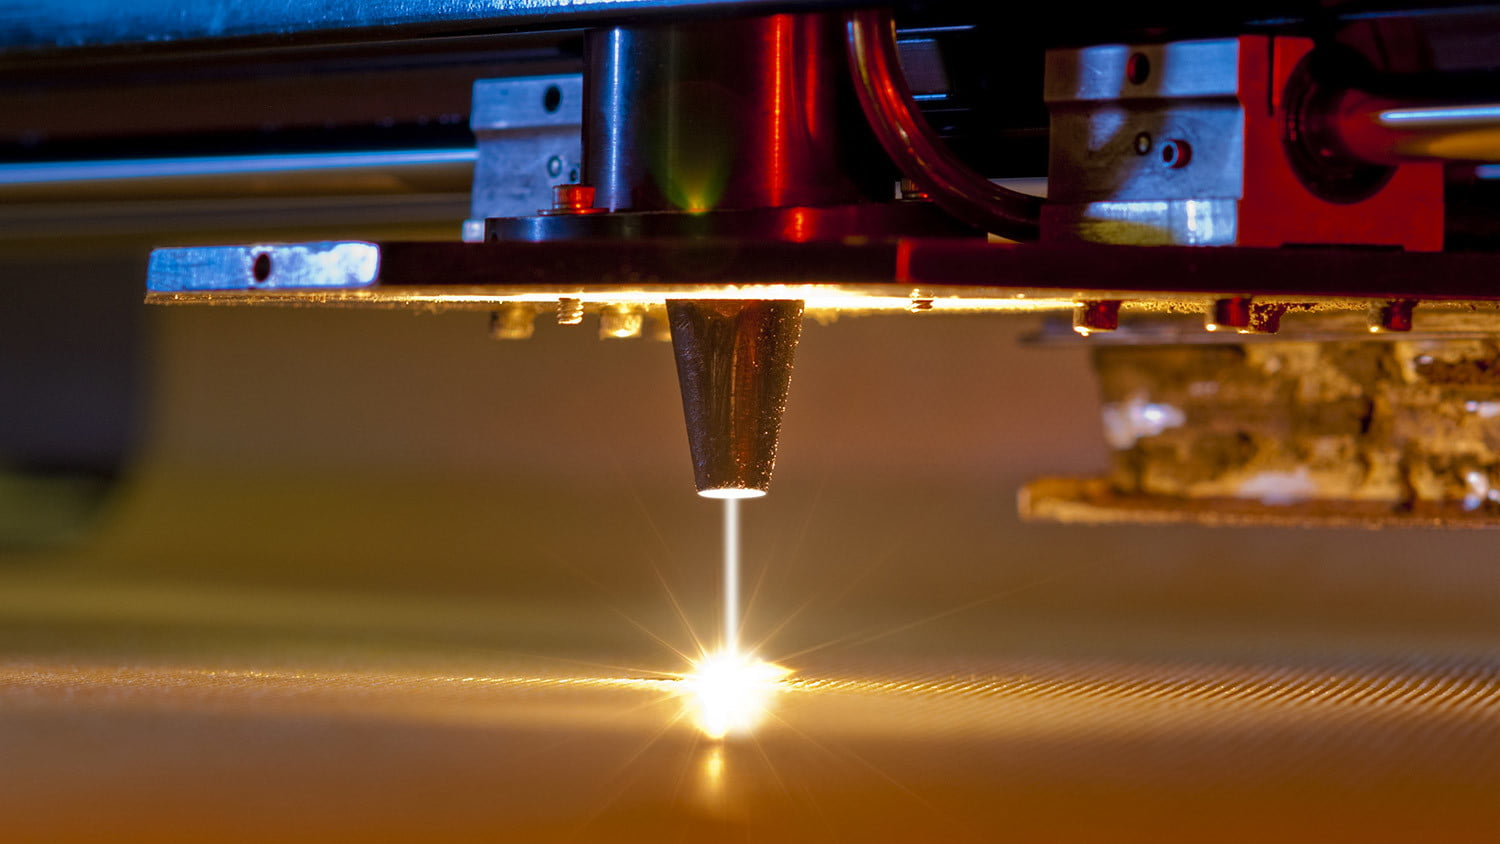 How to Build an Arduino-Powered Laser Engraver for $230